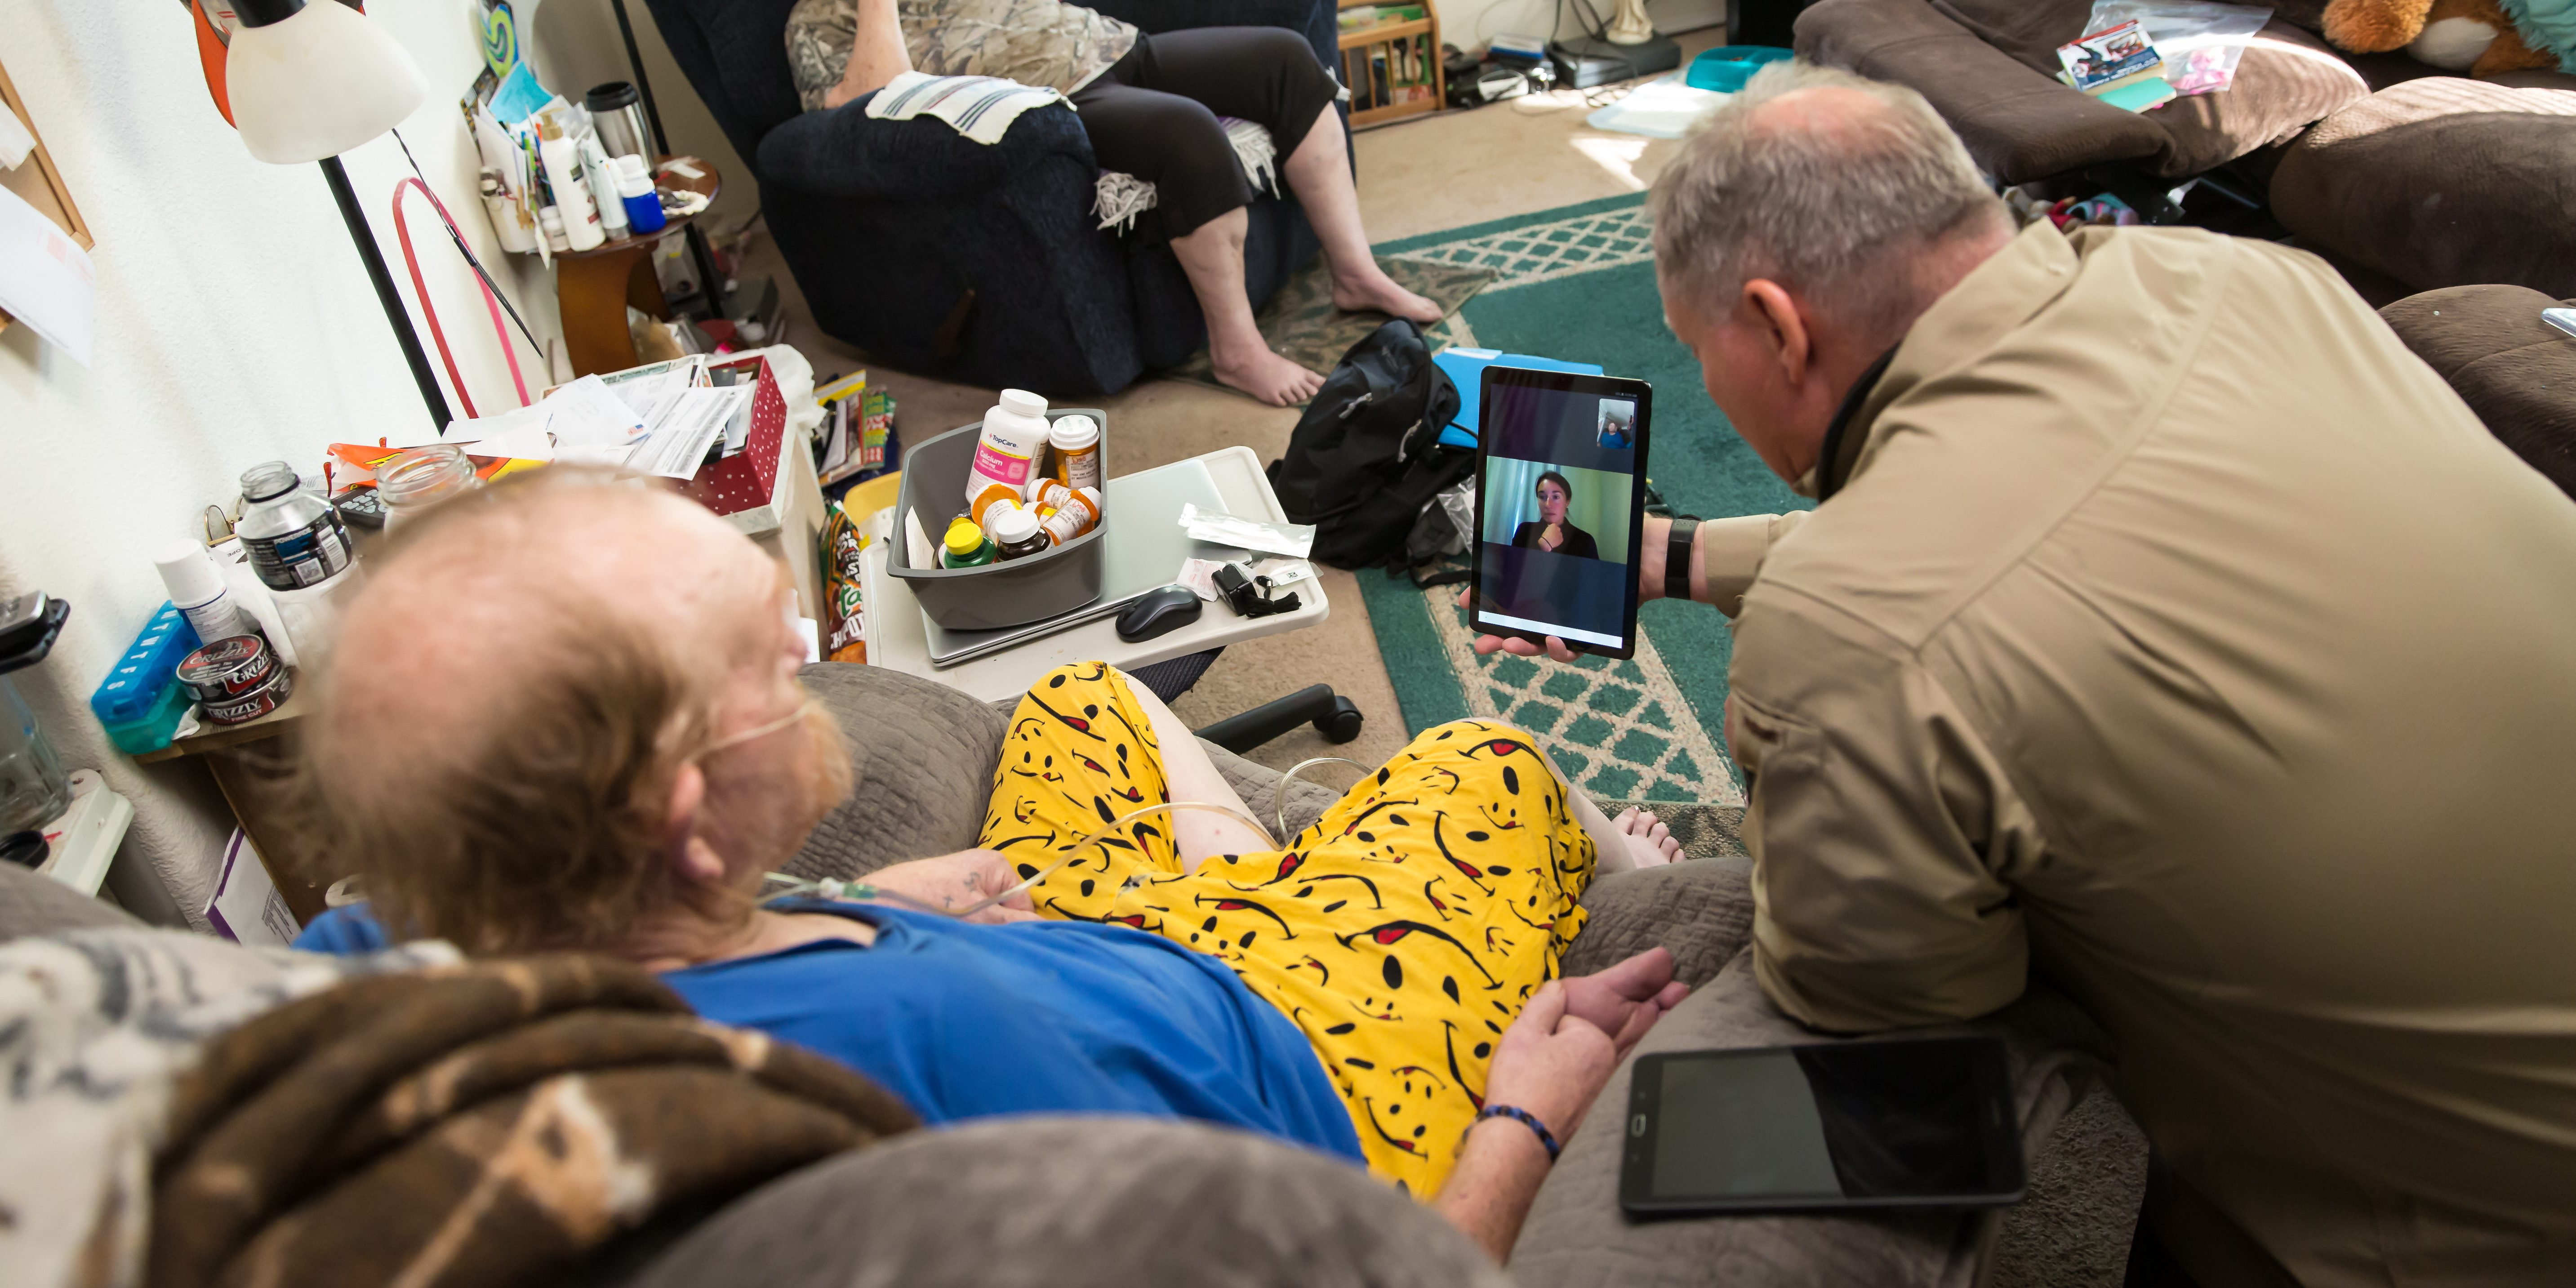 Mock patient and EMT speak with clinician on a tablet in the patients living room in rural Utah